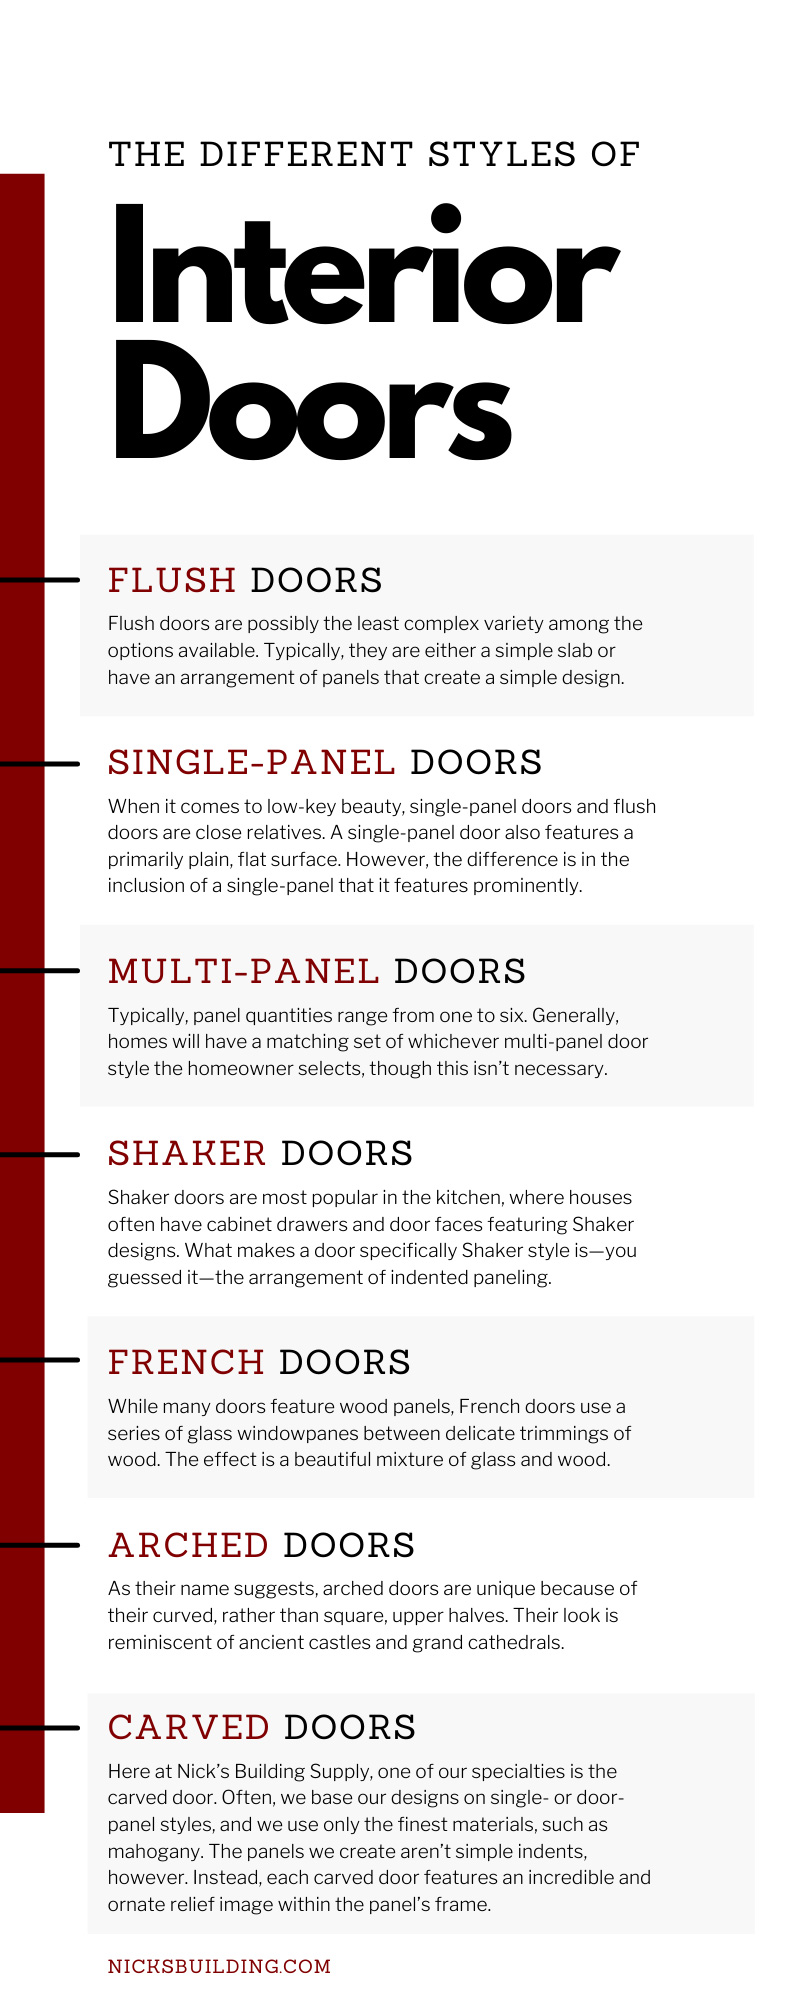 The Different Styles of Interior Doors